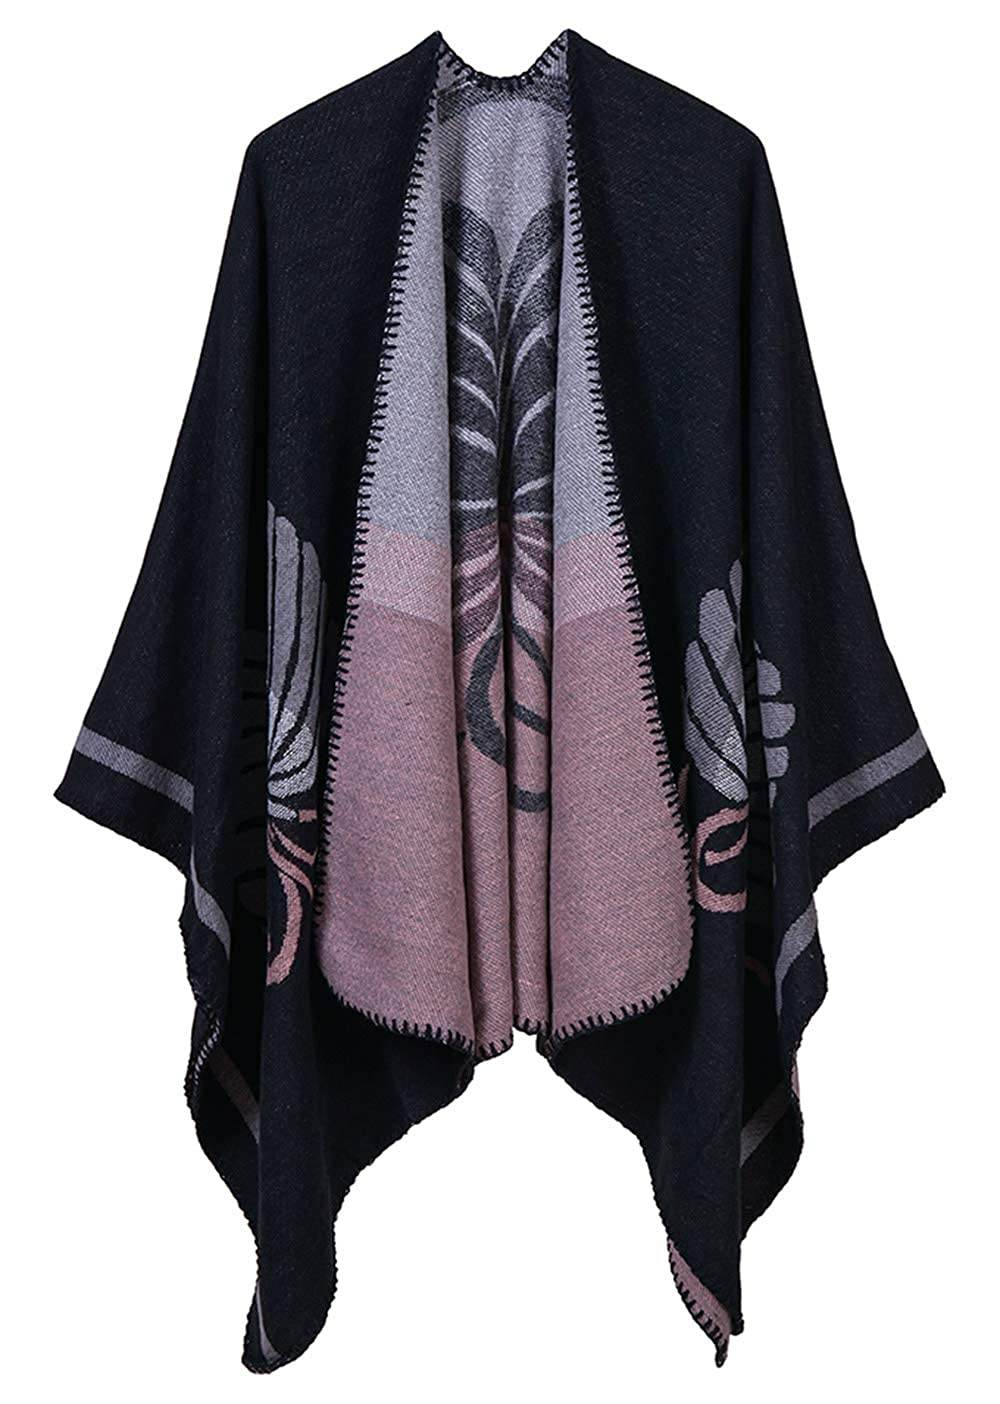 Aivtalk Lightweight Shawl Blanket for Women Oversized Poncho Coat Wrap Fringe Poncho Contrast Trims